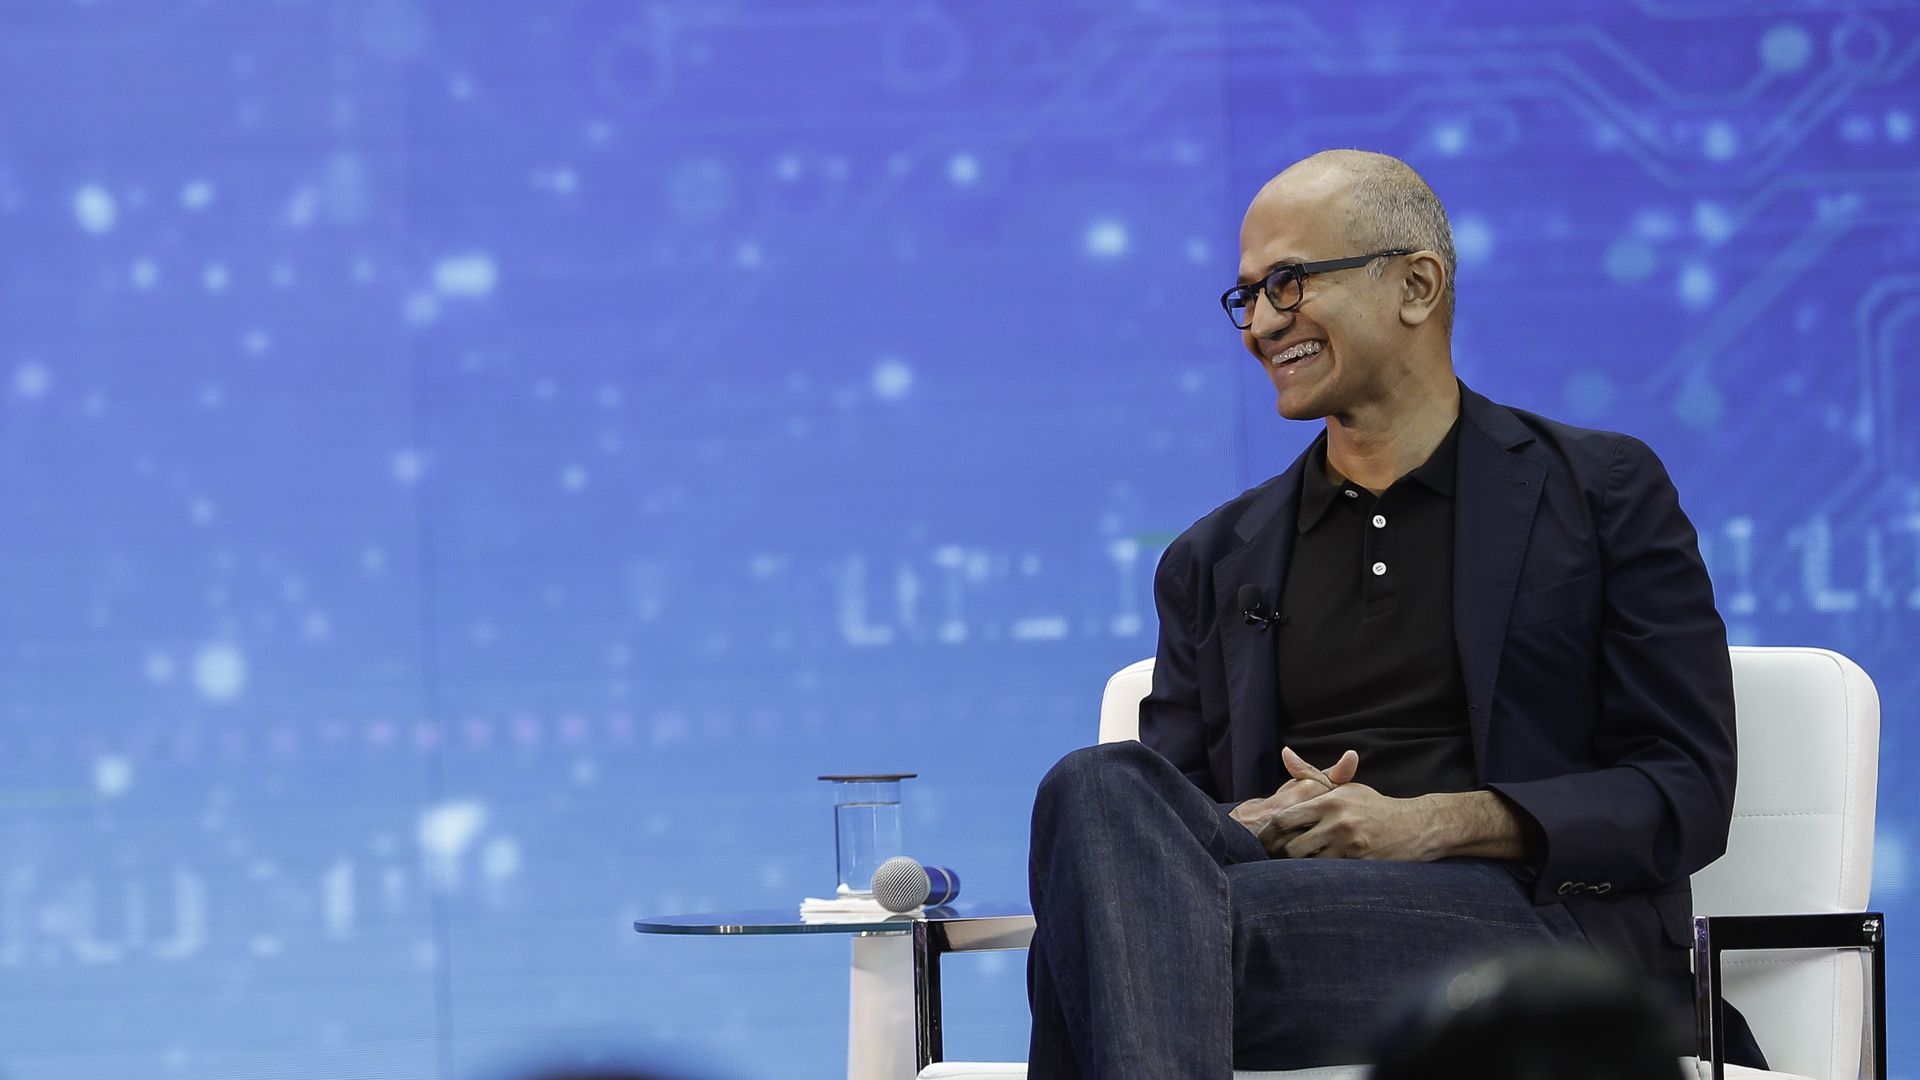 Microsoft will require suppliers to offer paid parental leave